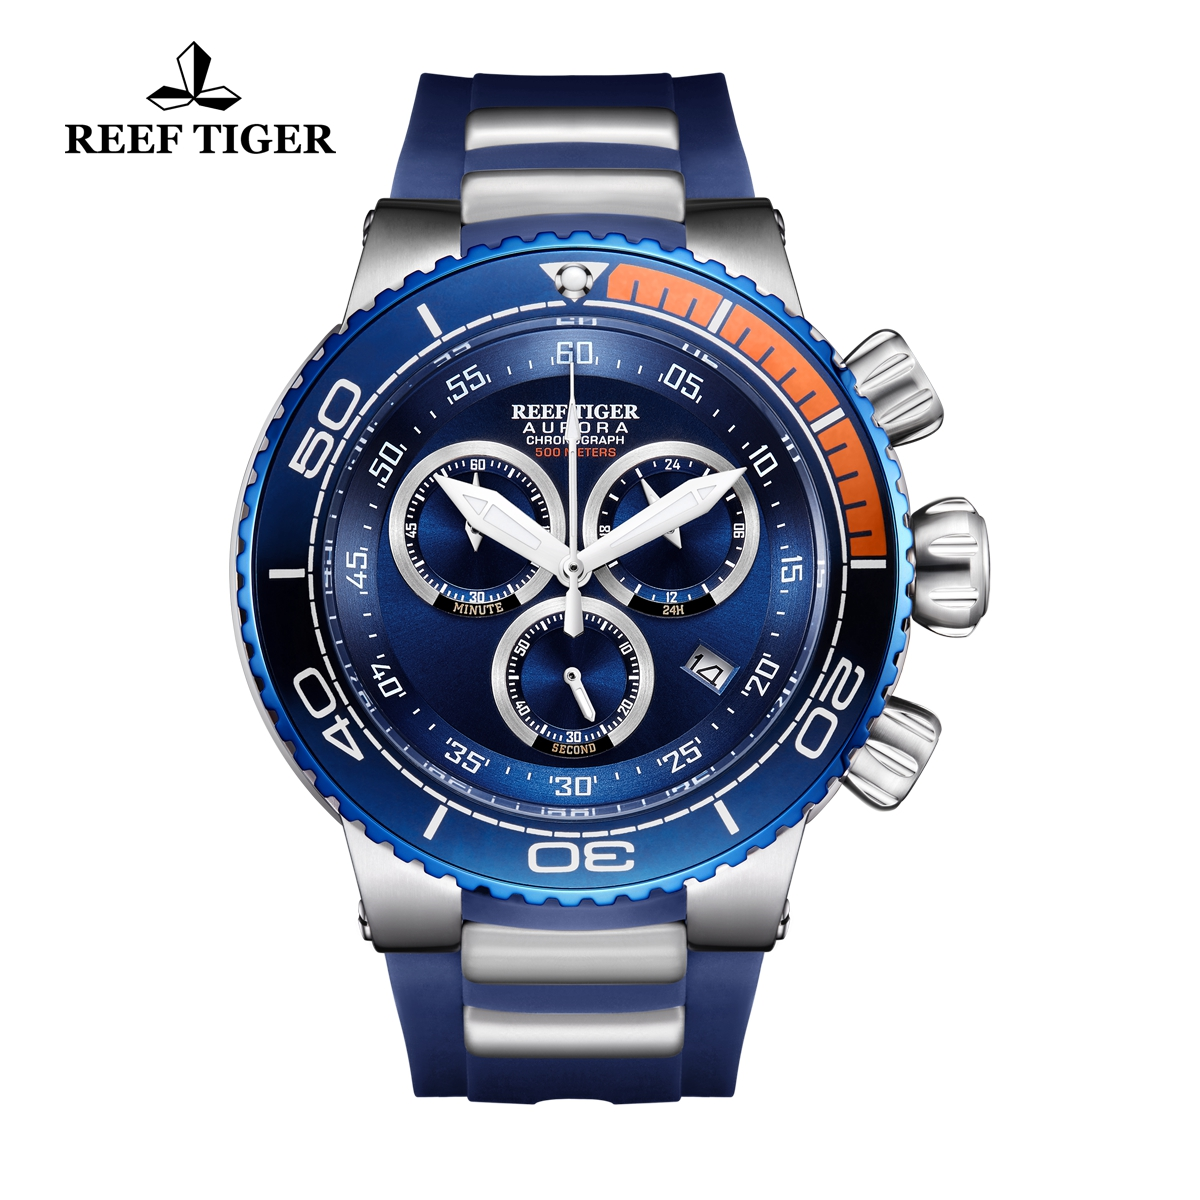 Reef Tiger Aurora Grand Ocean Fashion Watch Rubber Strap Blue Dial Chronograph Quartz Watch RGA3168-YLL